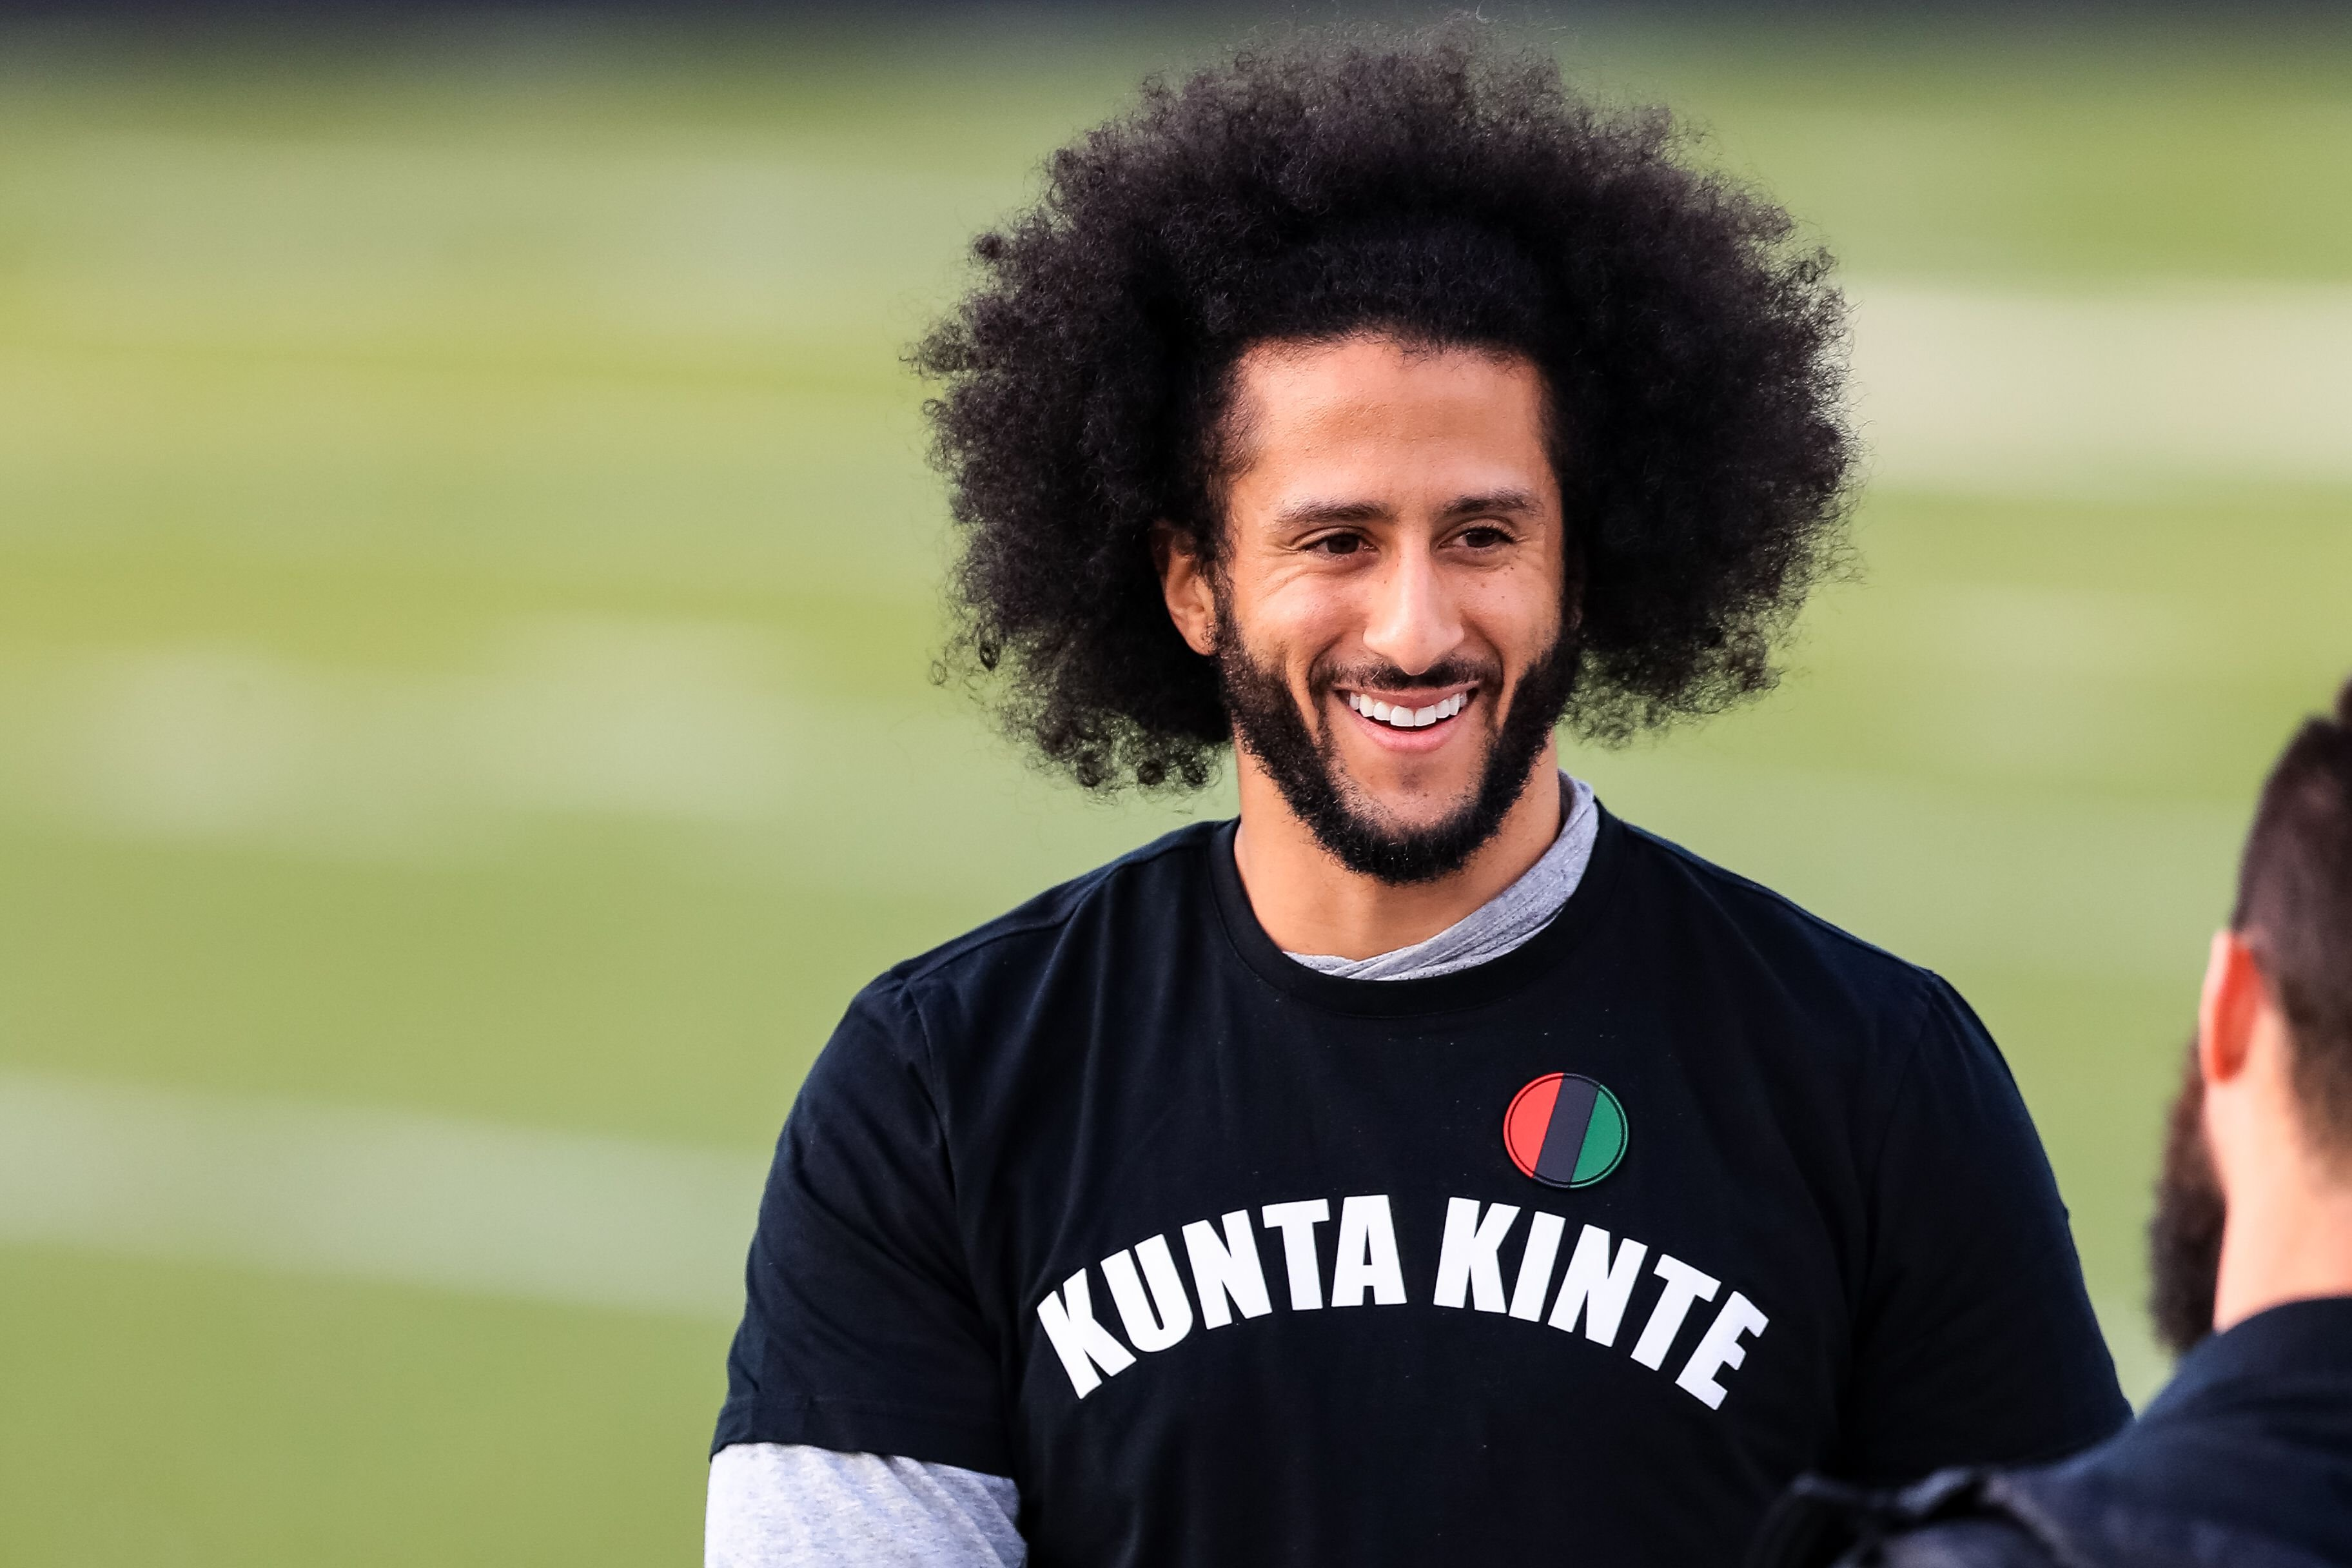 Colin Kaepernick looks on during his NFL workout held at Charles R Drew high school on November 16, 2019 in Riverdale, Georgia. | Source: Getty Images